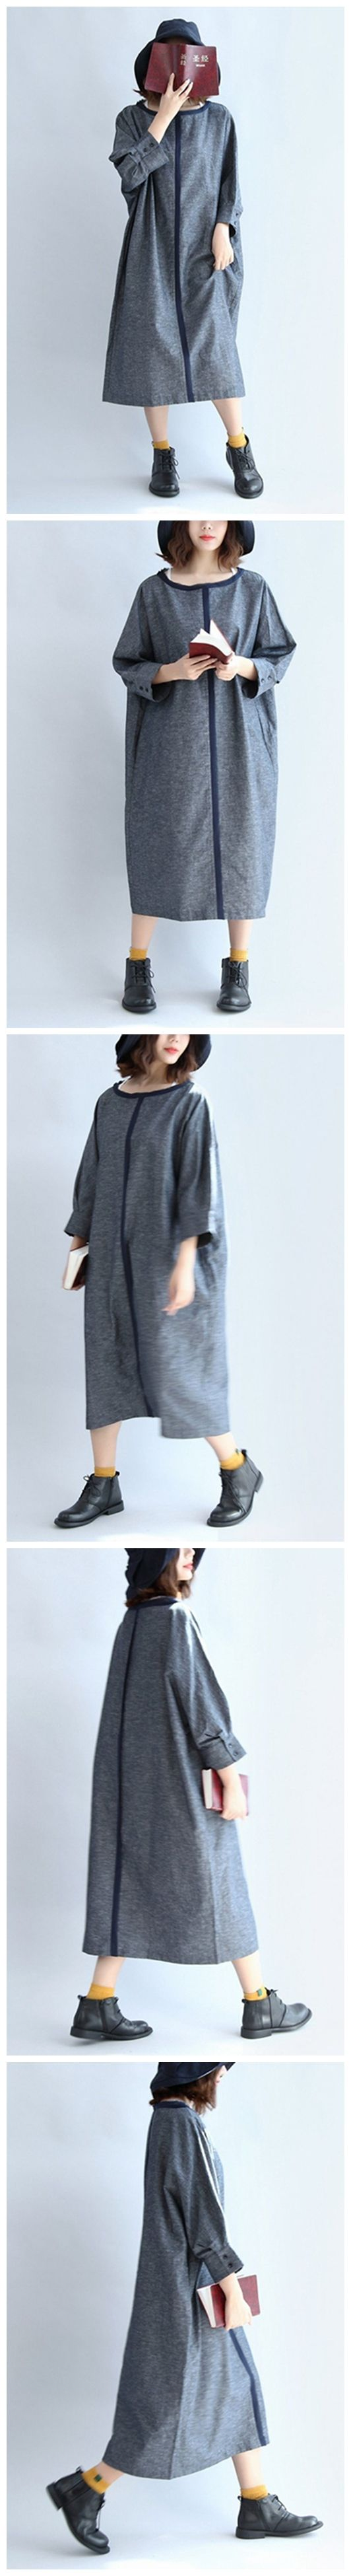 Women Round Collar Linen Casual Maxi Dress Women Clothes Q7142